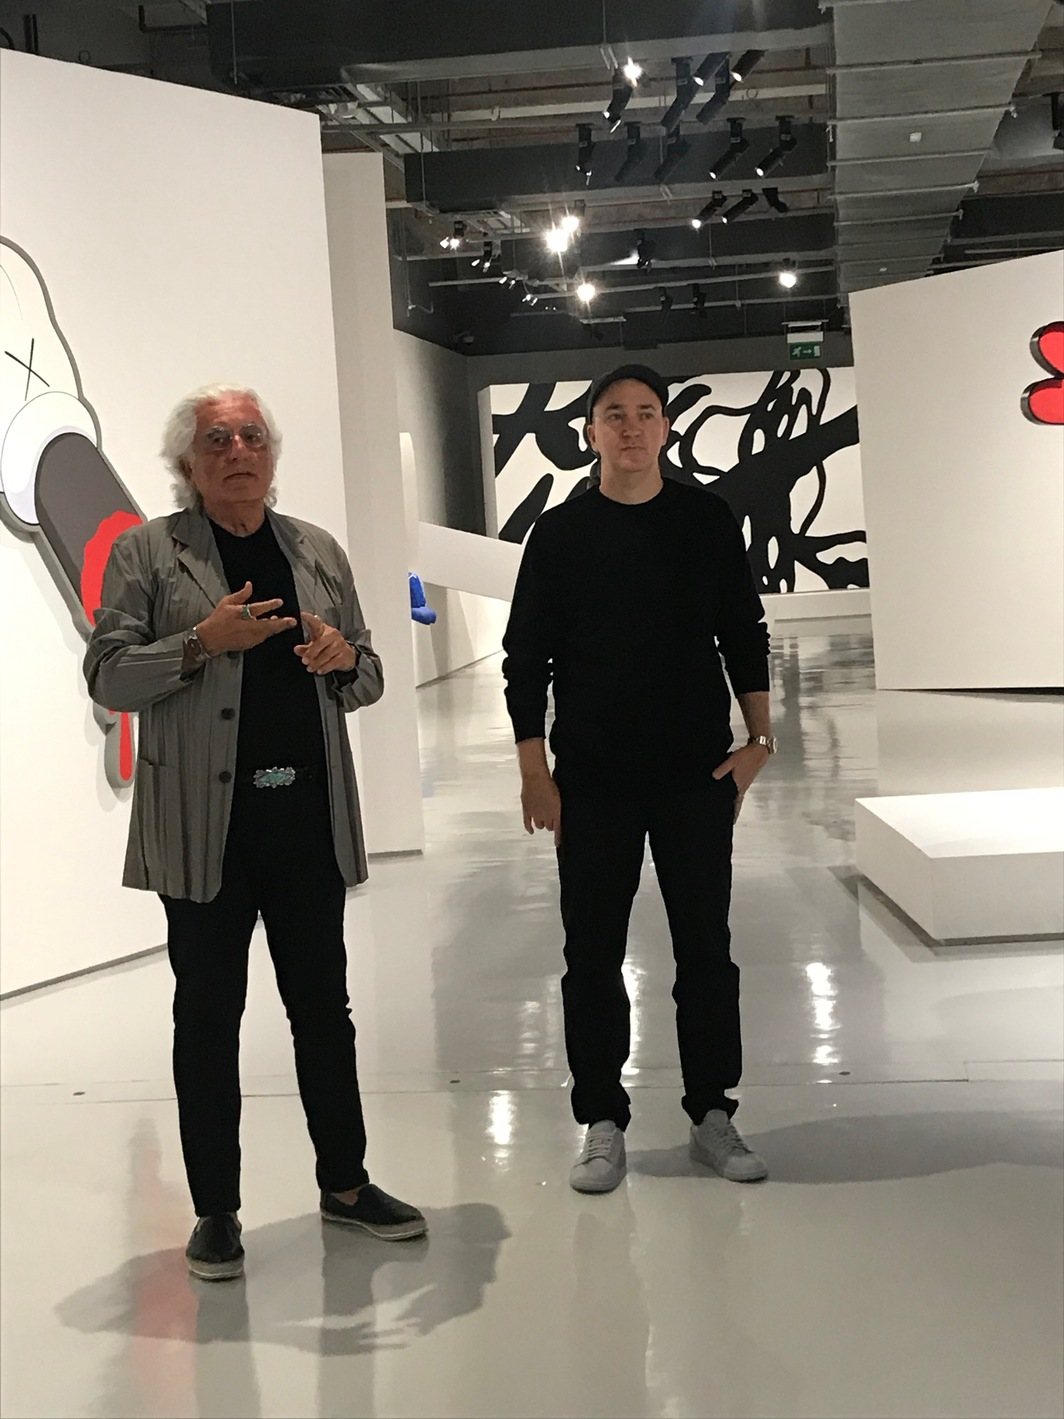 Curator Germano Clement and artist Brian Donnelly (a.k.a. KAWS).